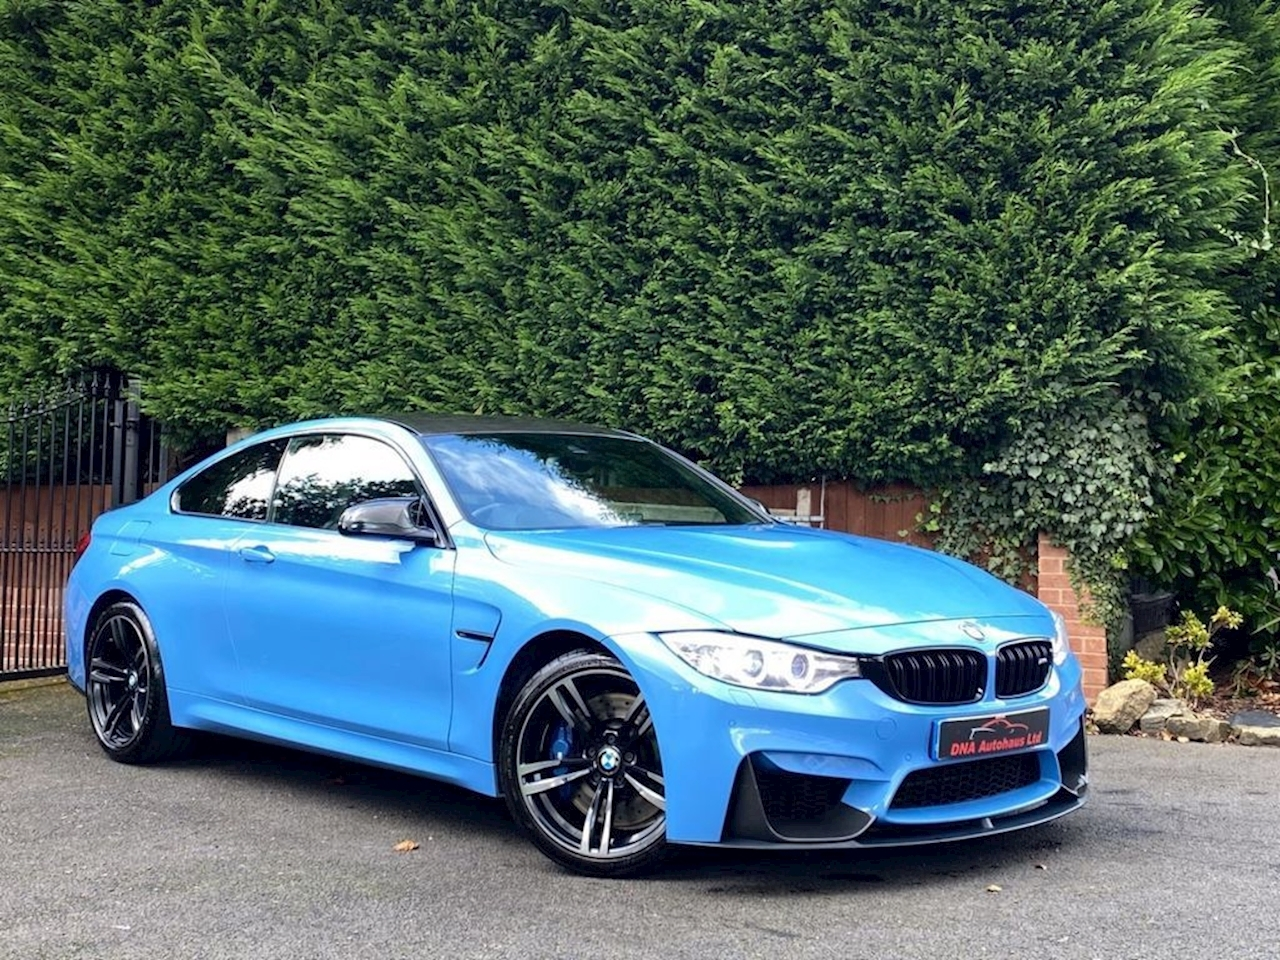 BMW 4 Series M4 Coupe 3.0 Semi Auto Petrol